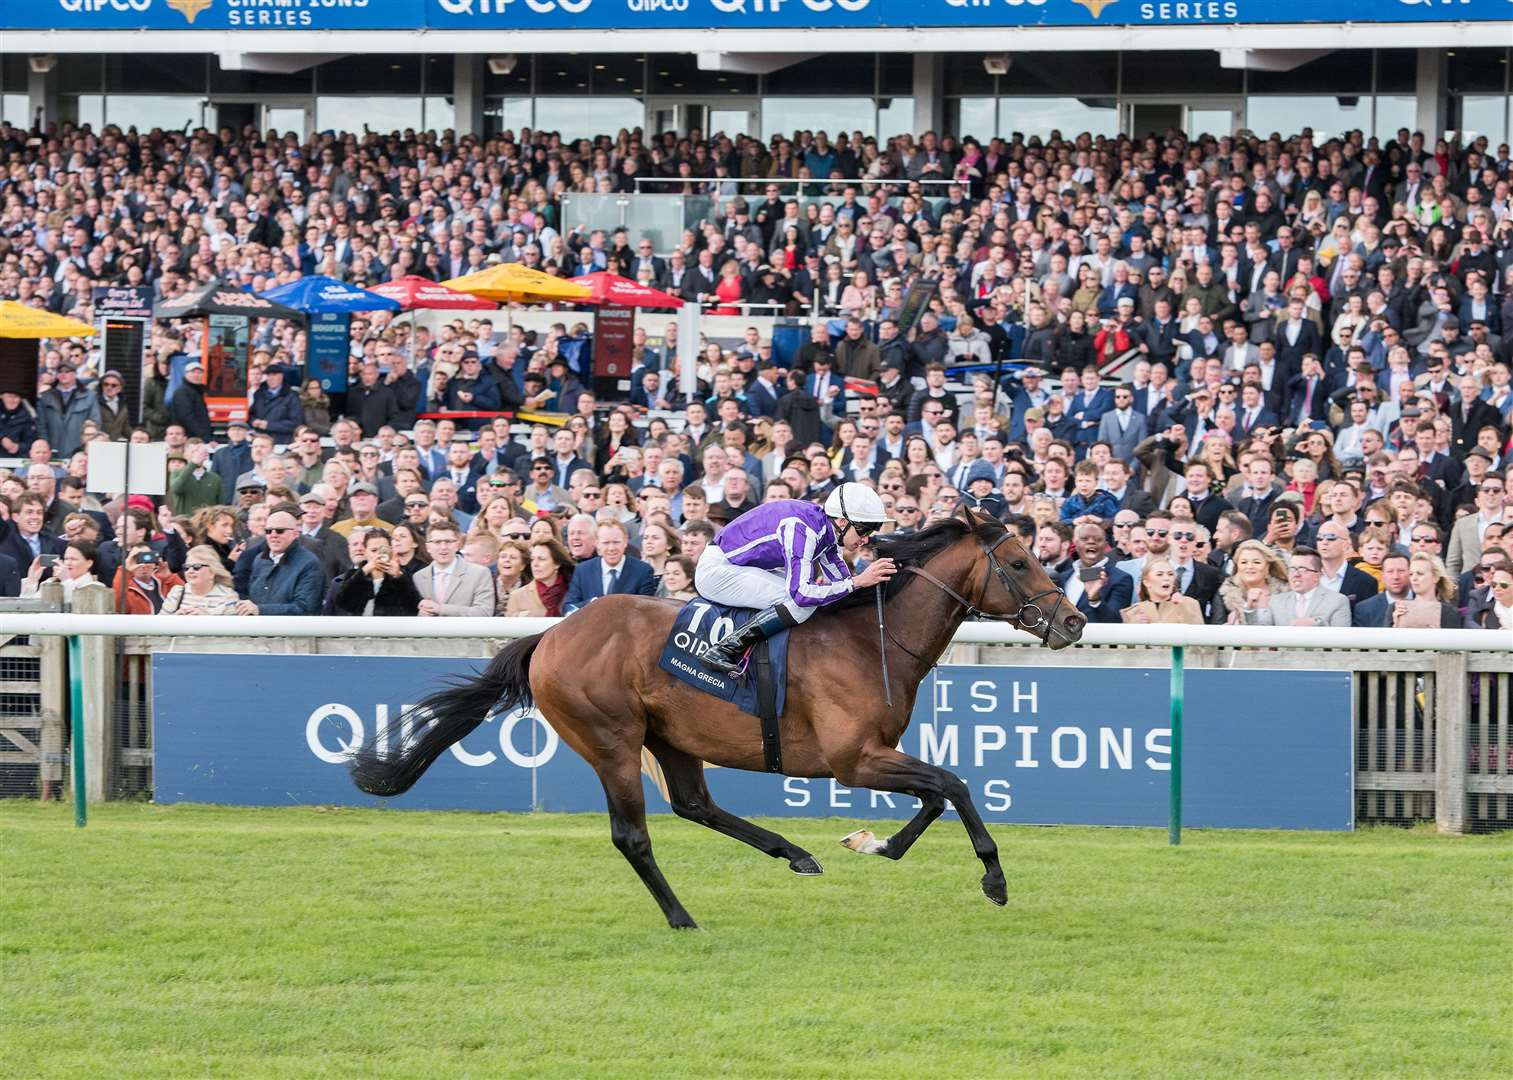 2000 Guineas day at Newmarket Rowley Mile Qipco 2000 Guineas Stakes (Group 1) (British Champions Series) (Colts & Fillies).10. Magna Grecia.Winning jockey: Donnacha O'Brien.Winning trainer: A P O'Brien Picture by Mark Westley.